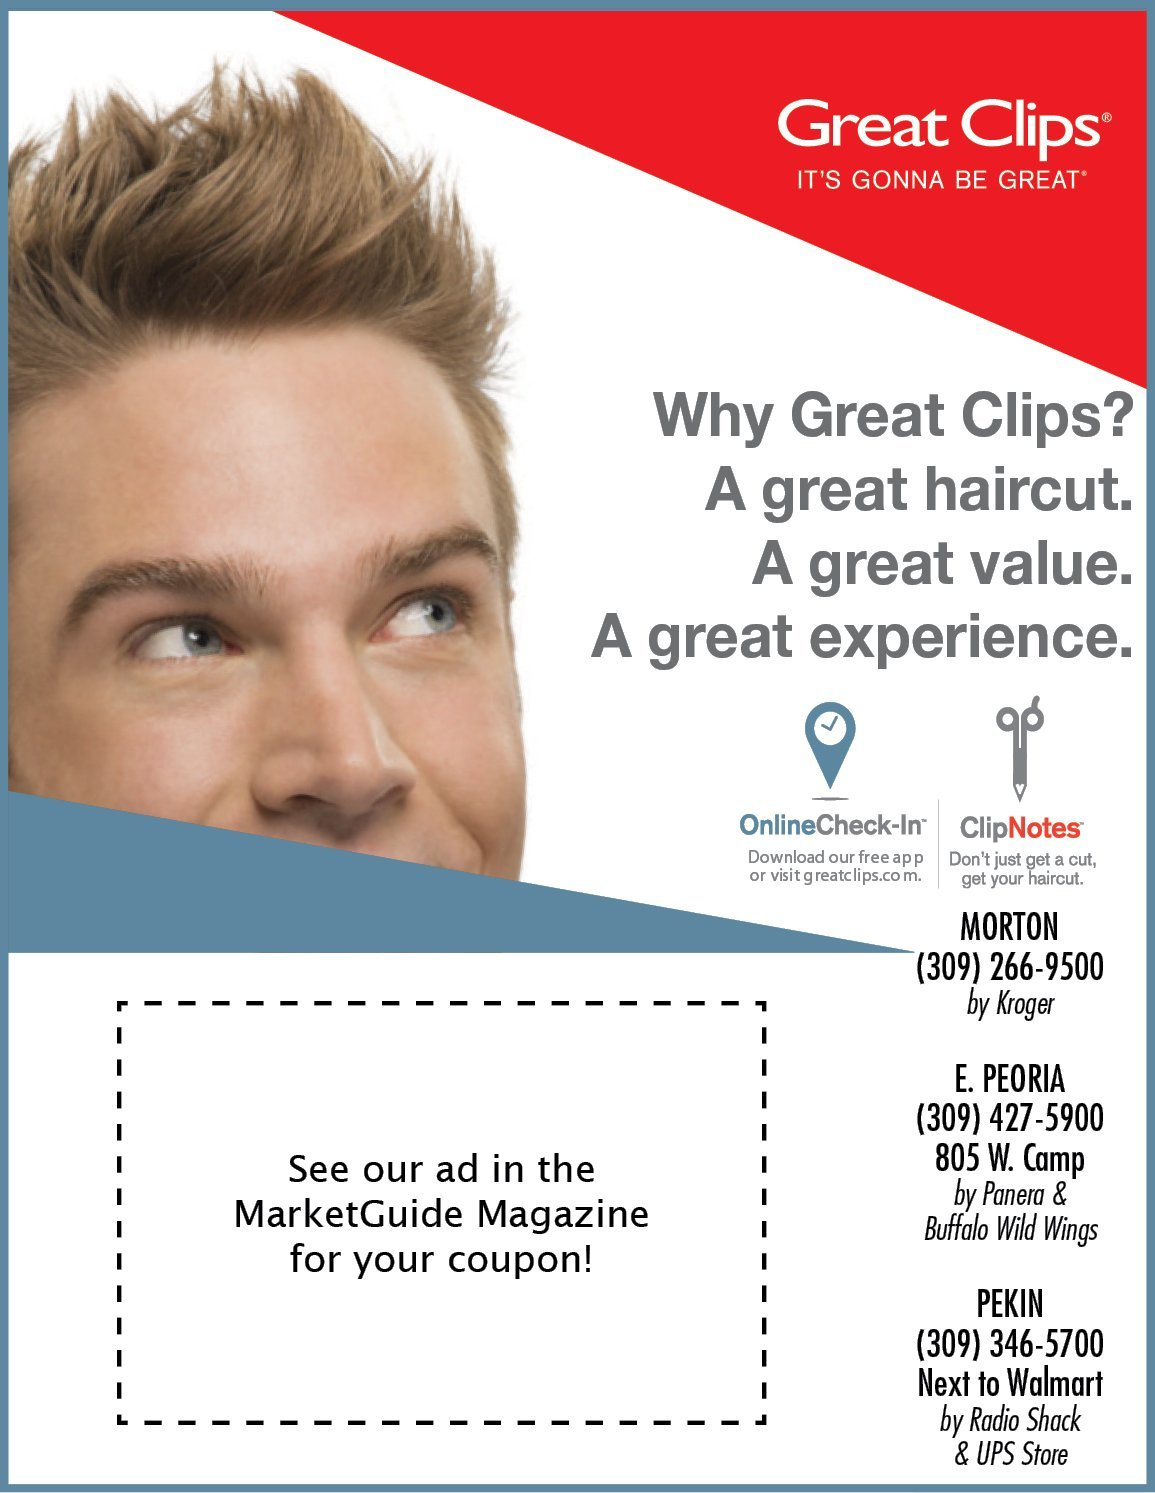 Great Clips haircut coupons in MarketGuide Magazine $9.99 coupons East Peoria, Morton, Pekin, IL